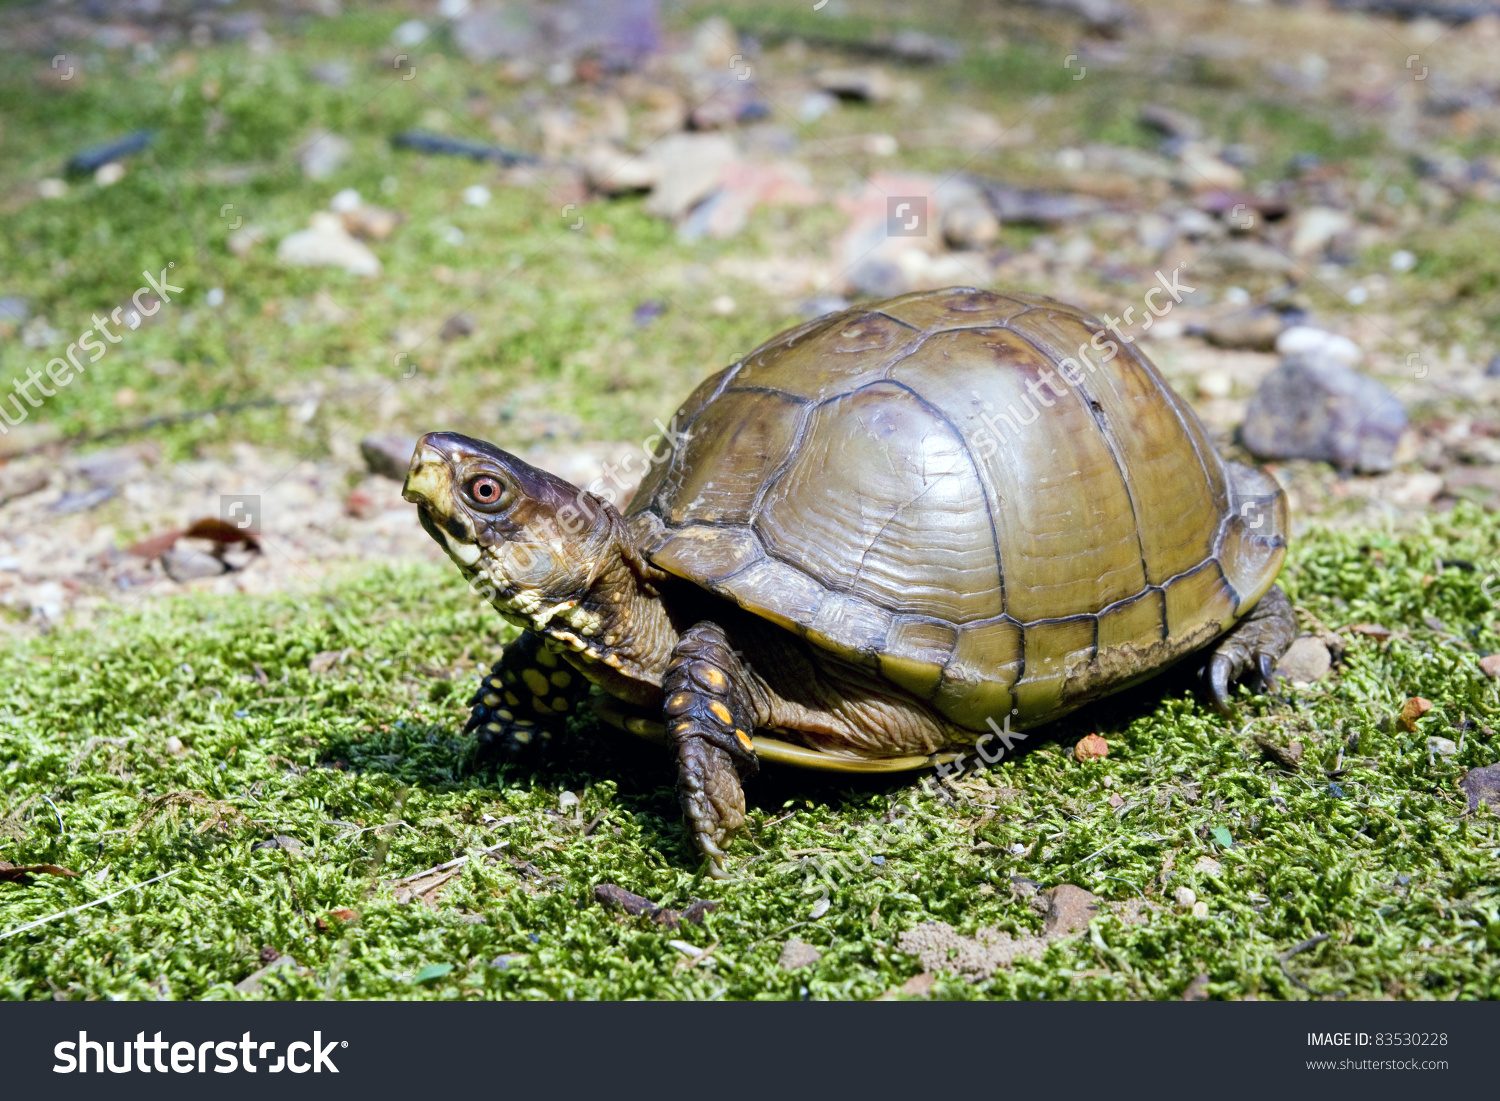 Threetoed Box Turtle Terrapene Carolina Triunguis Stock Photo.